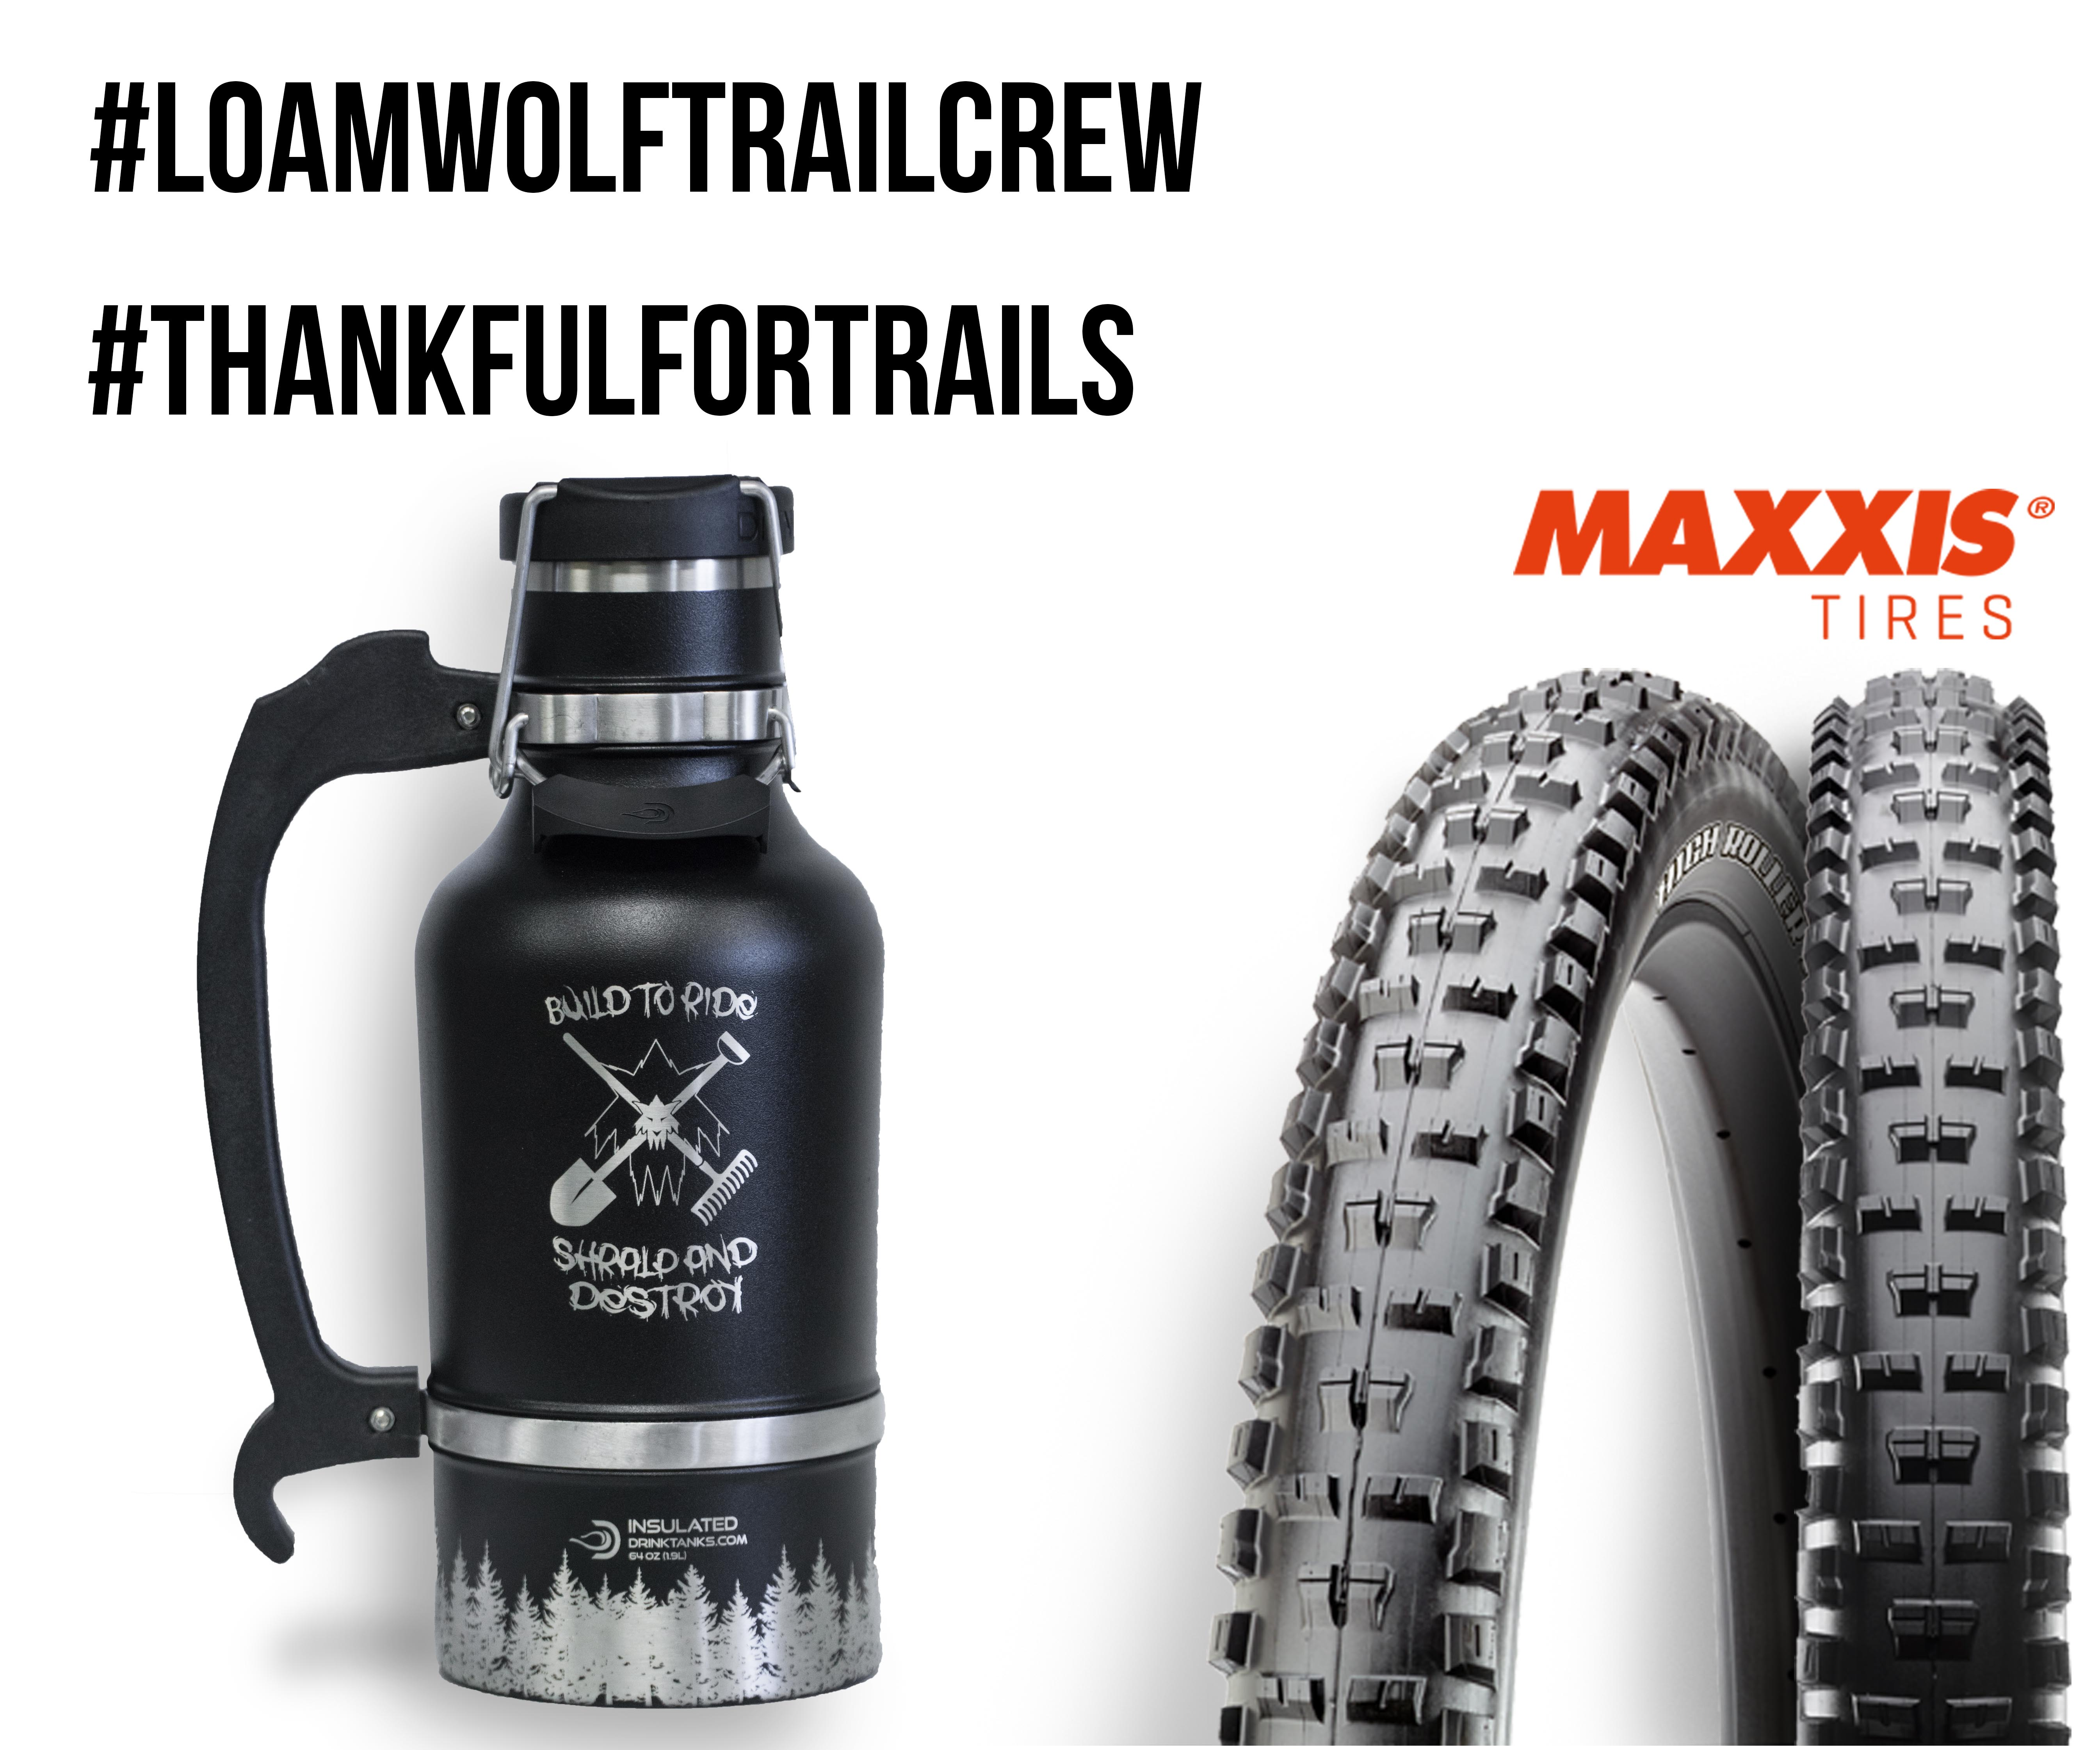 Rut Track: ThanksforTrails Giveaway Prize